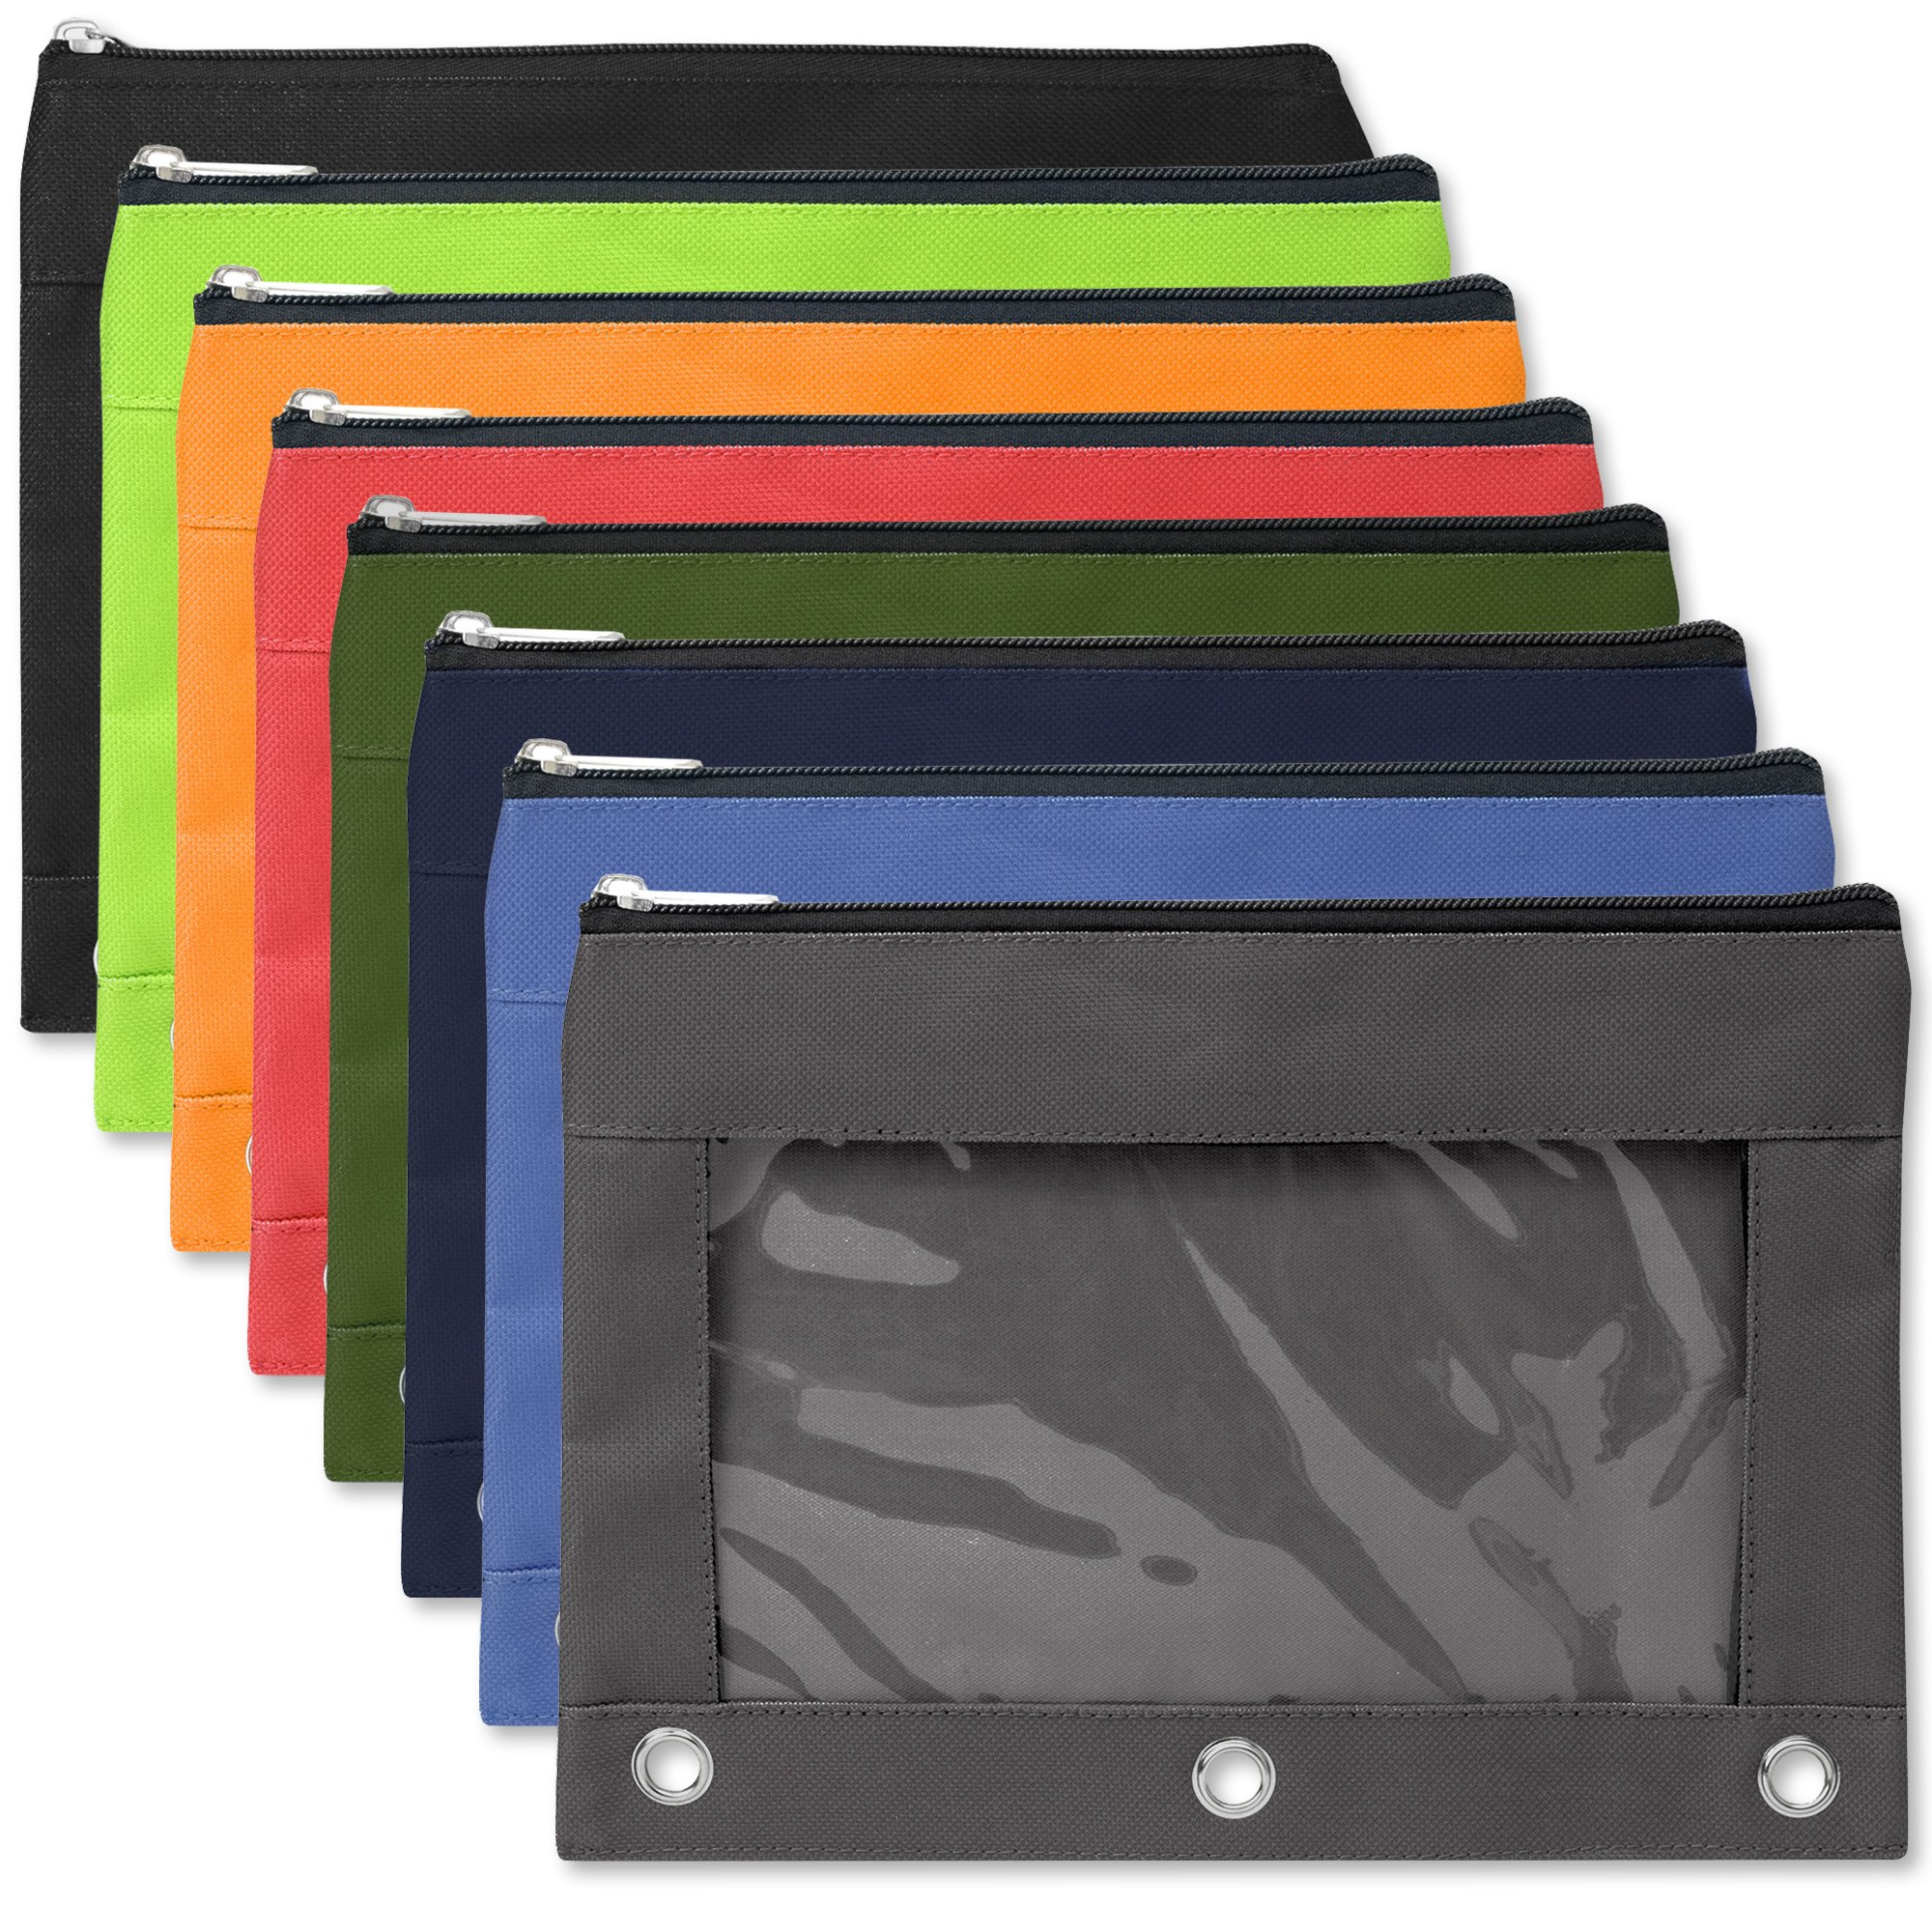 3 Ring Pencil Cases with Clear Window - Bulk Wholesale Pack of 96 Pieces (8 Color Assortment) by Trail maker